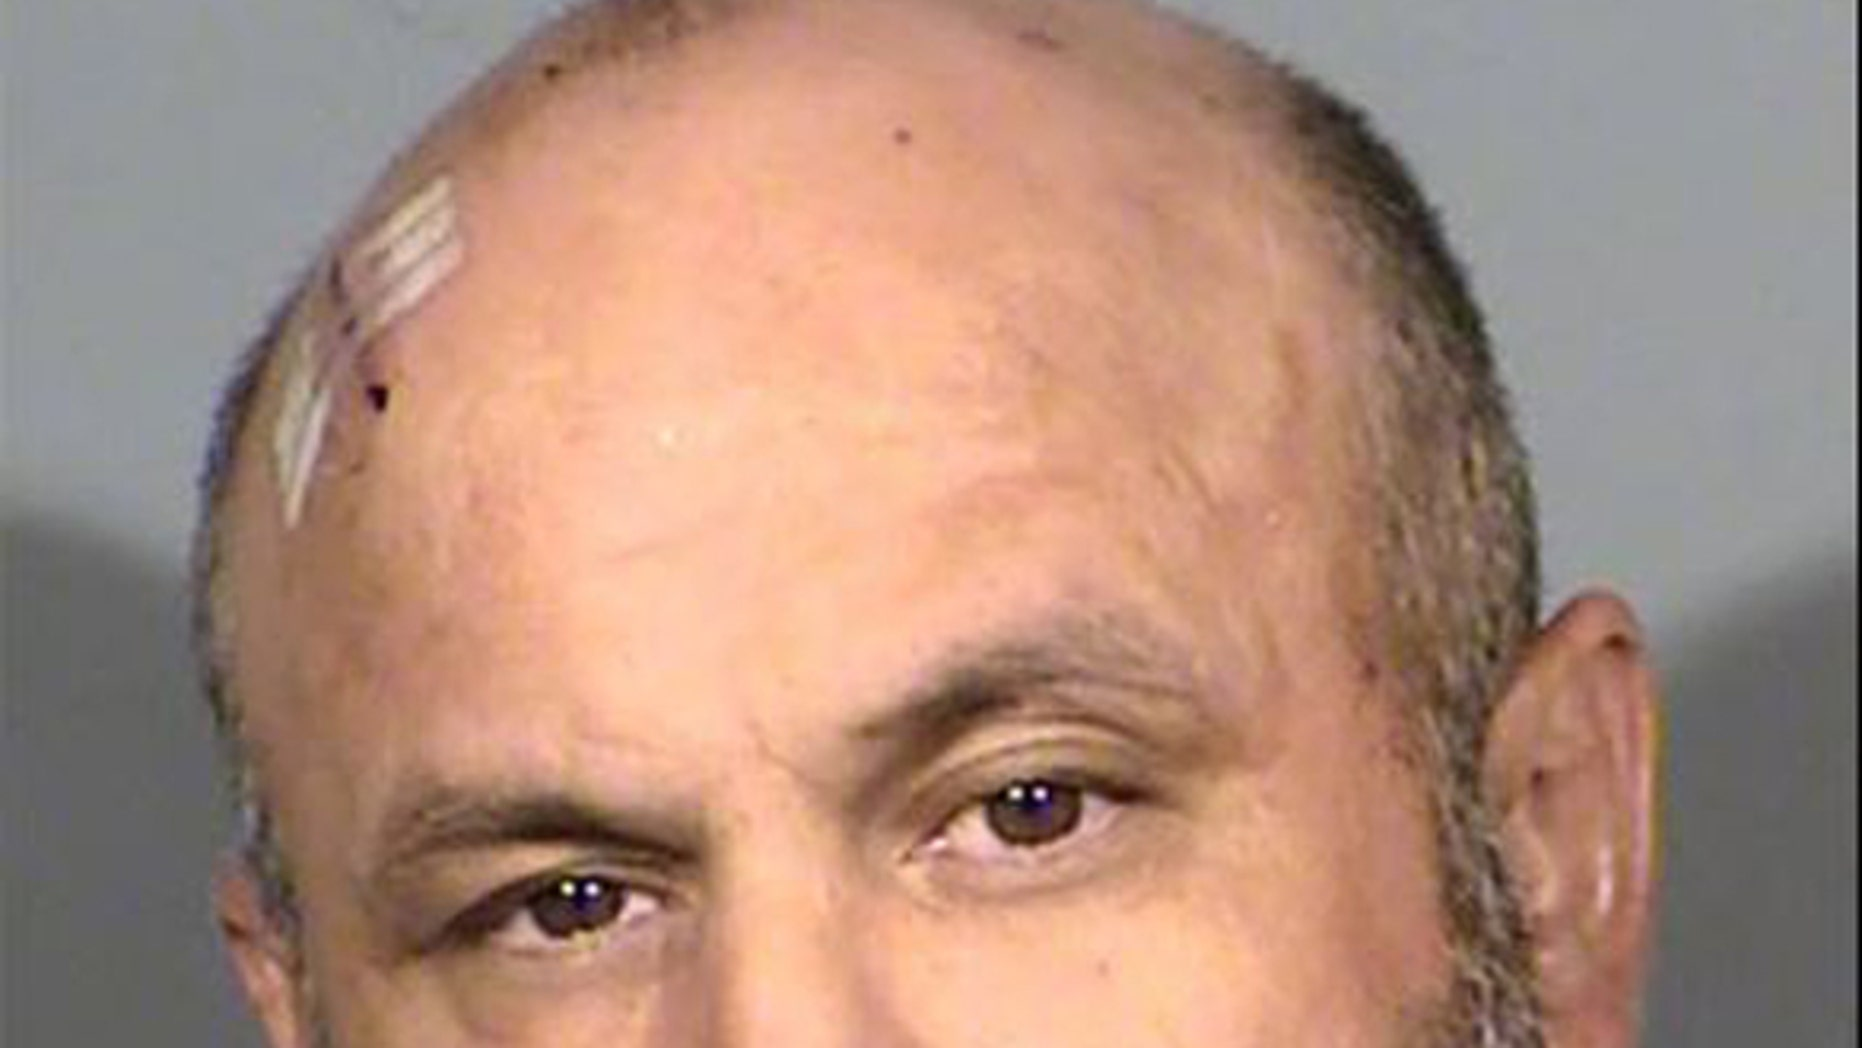 Danny Roy Salazar, 40, is accused of posing as a delivery driver to steal from Las Vegas hotels, police said.